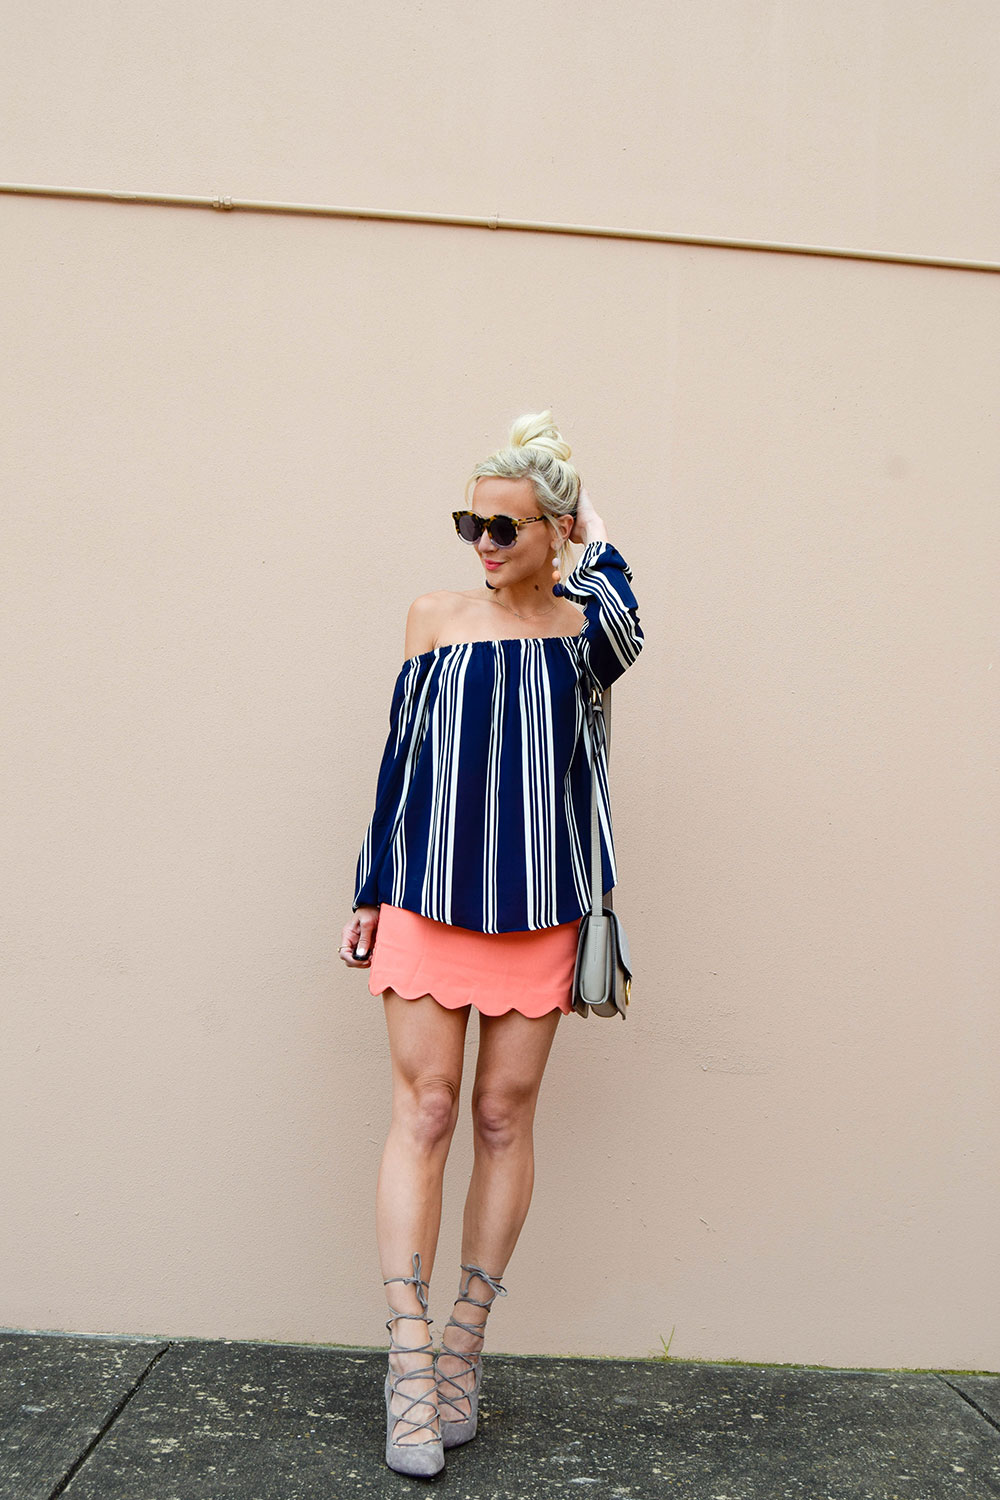 vandi-fair-blog-lauren-vandiver-dallas-texas-southern-fashion-blogger-shop-tristin-clothing-online-boutique-local-navy-nautical-striped-off-the-shoulder-top-coral-scallop-skirt-fall-outfit-4